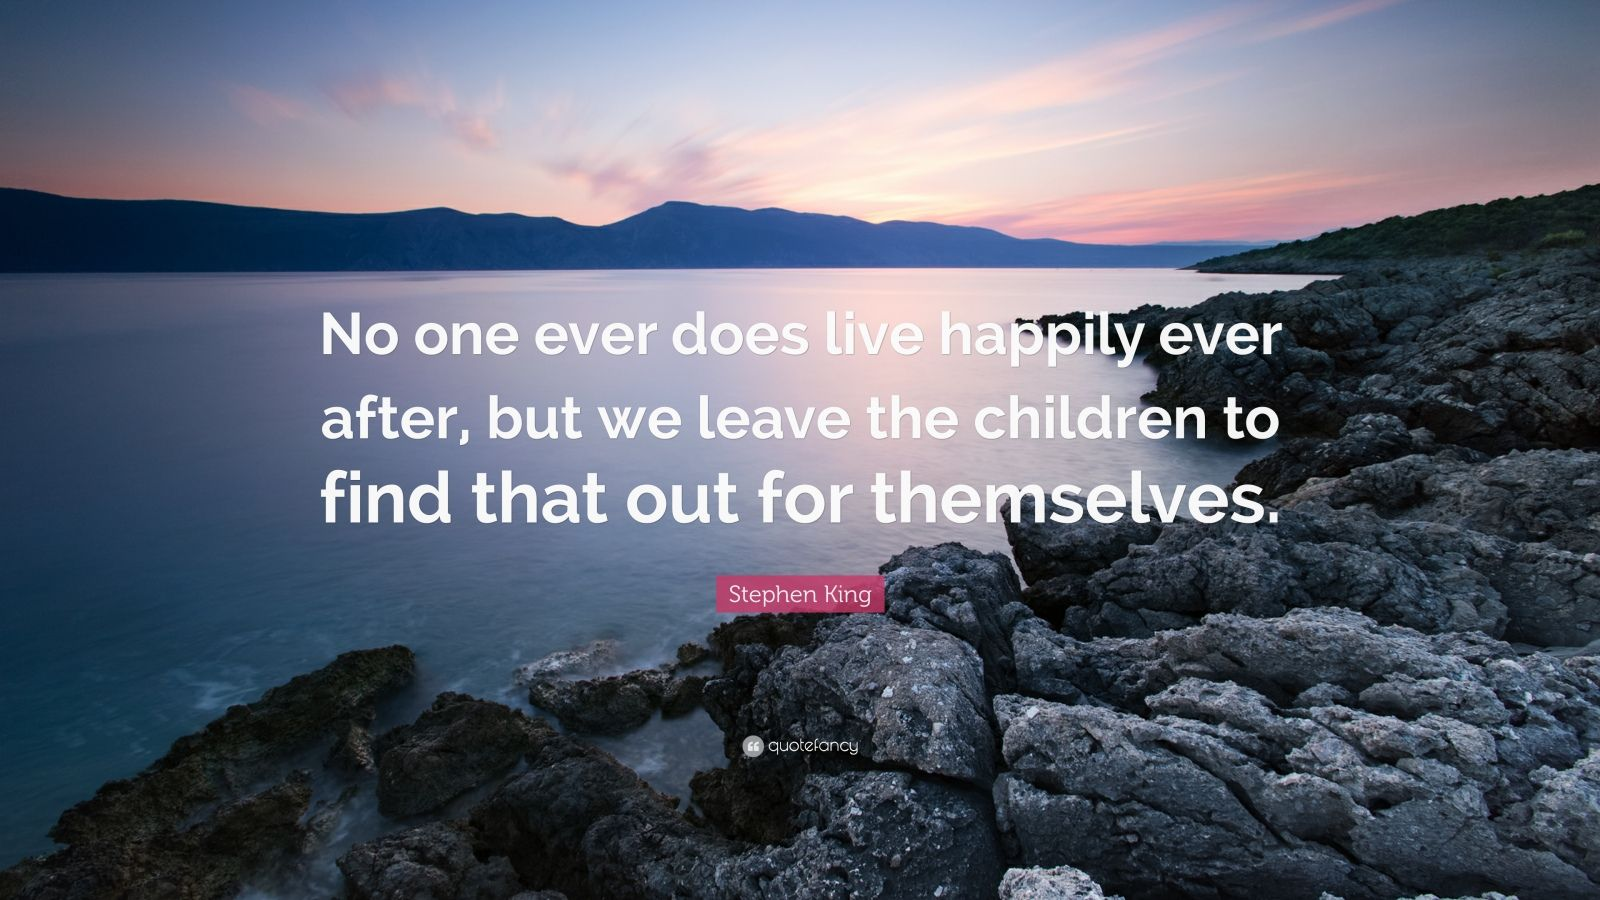 """Stephen King Quote: """"No one ever does live happily ever after, but we leave the children to find that out for themselves."""""""